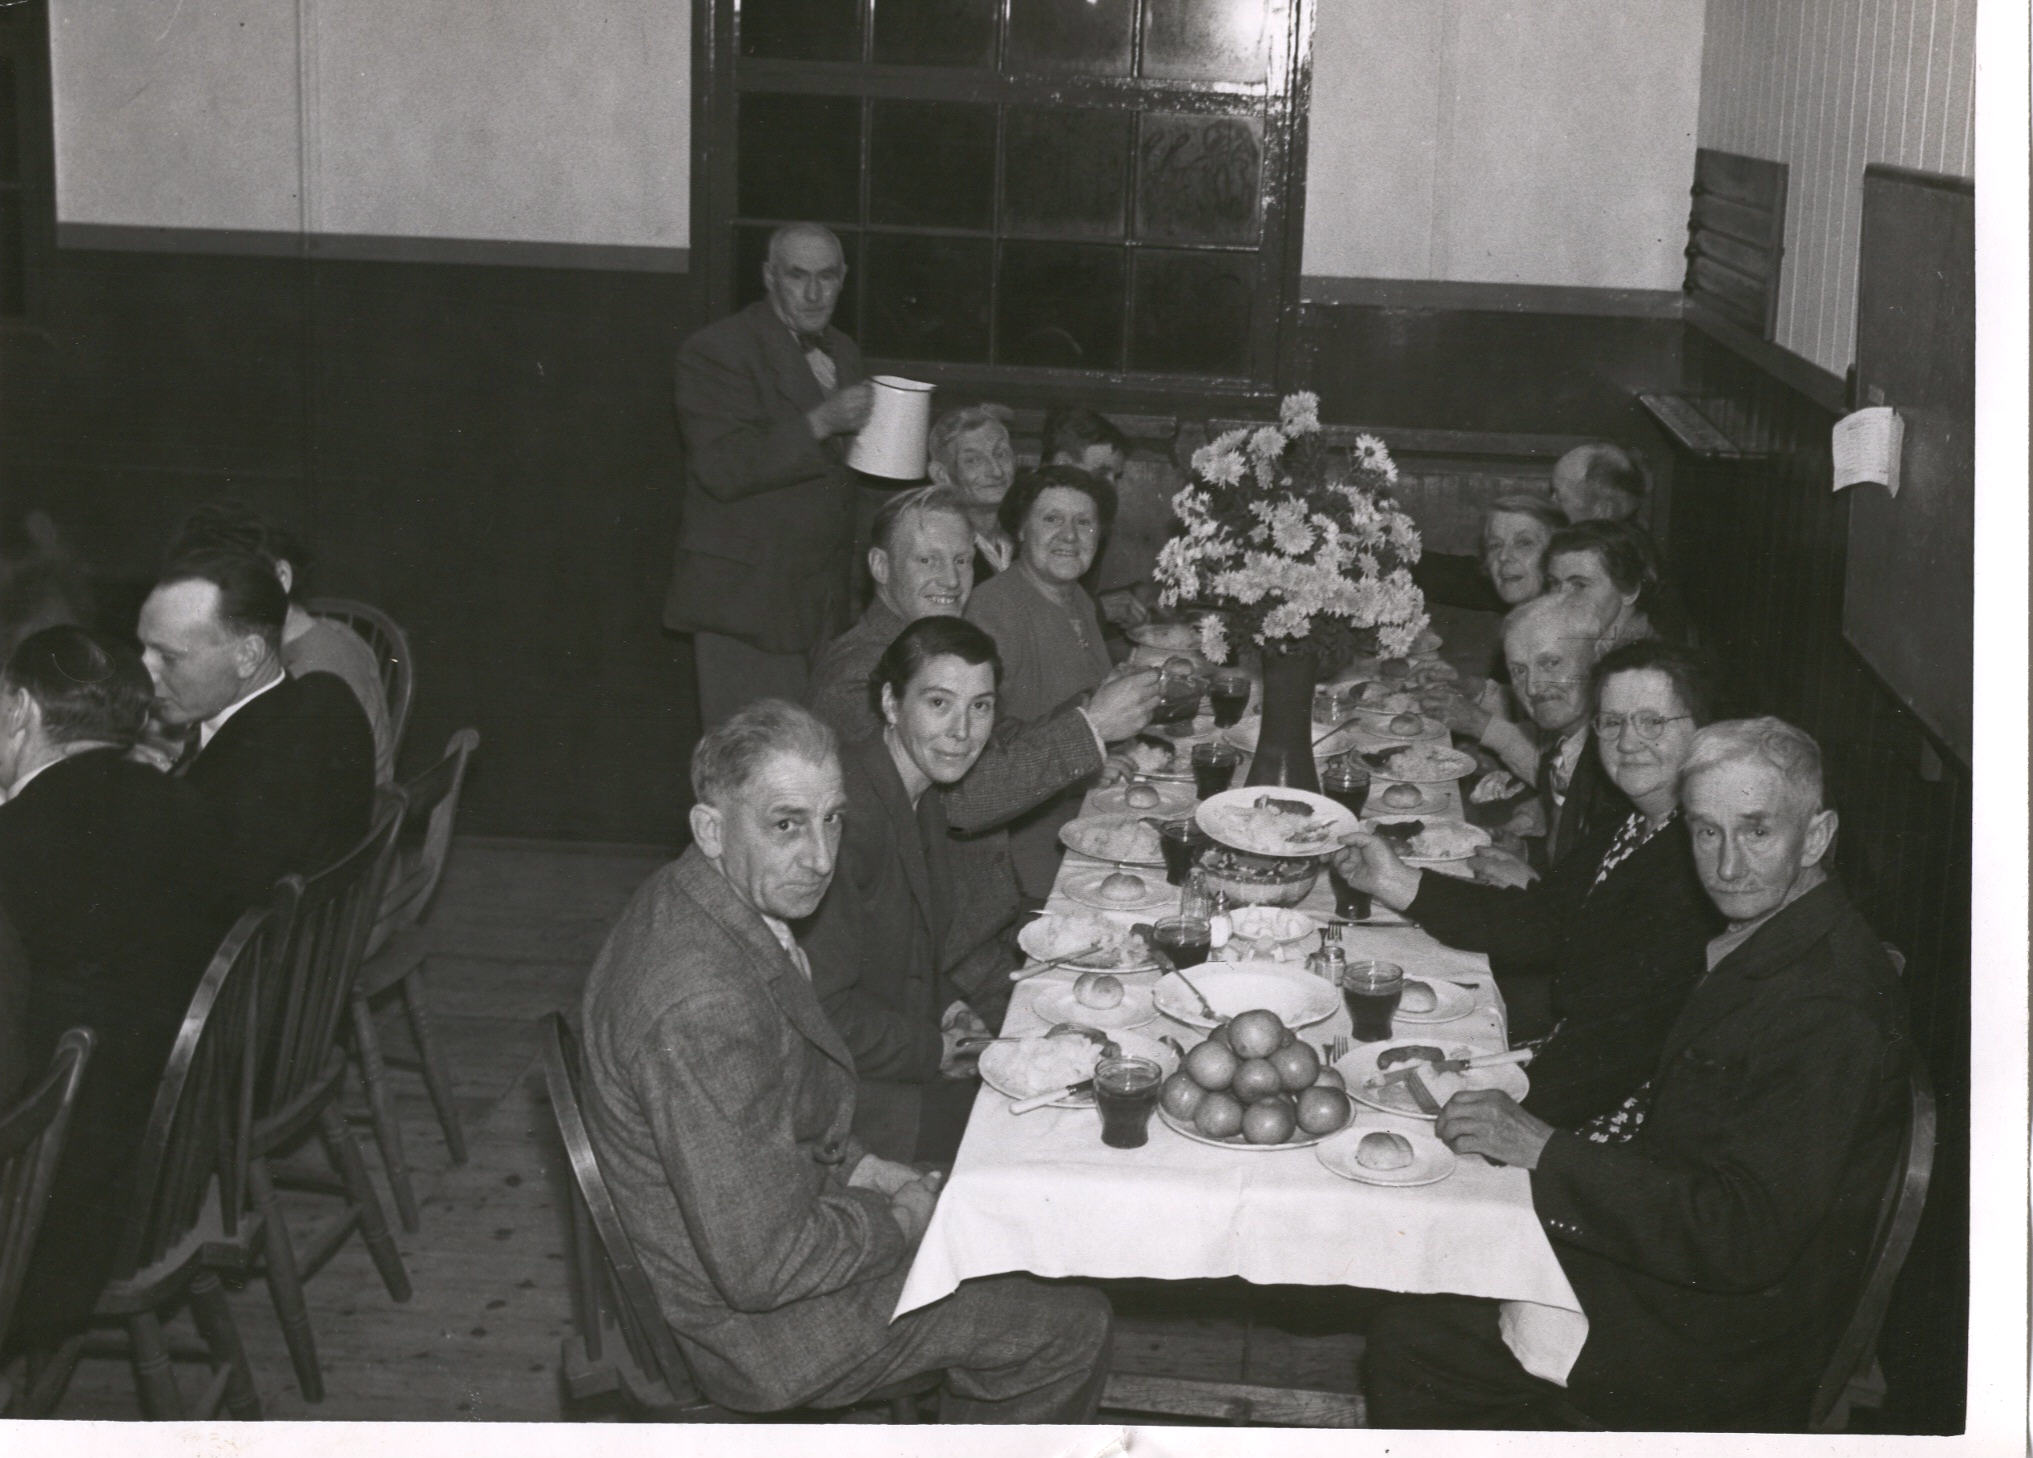 Harvest Supper in the old village hall